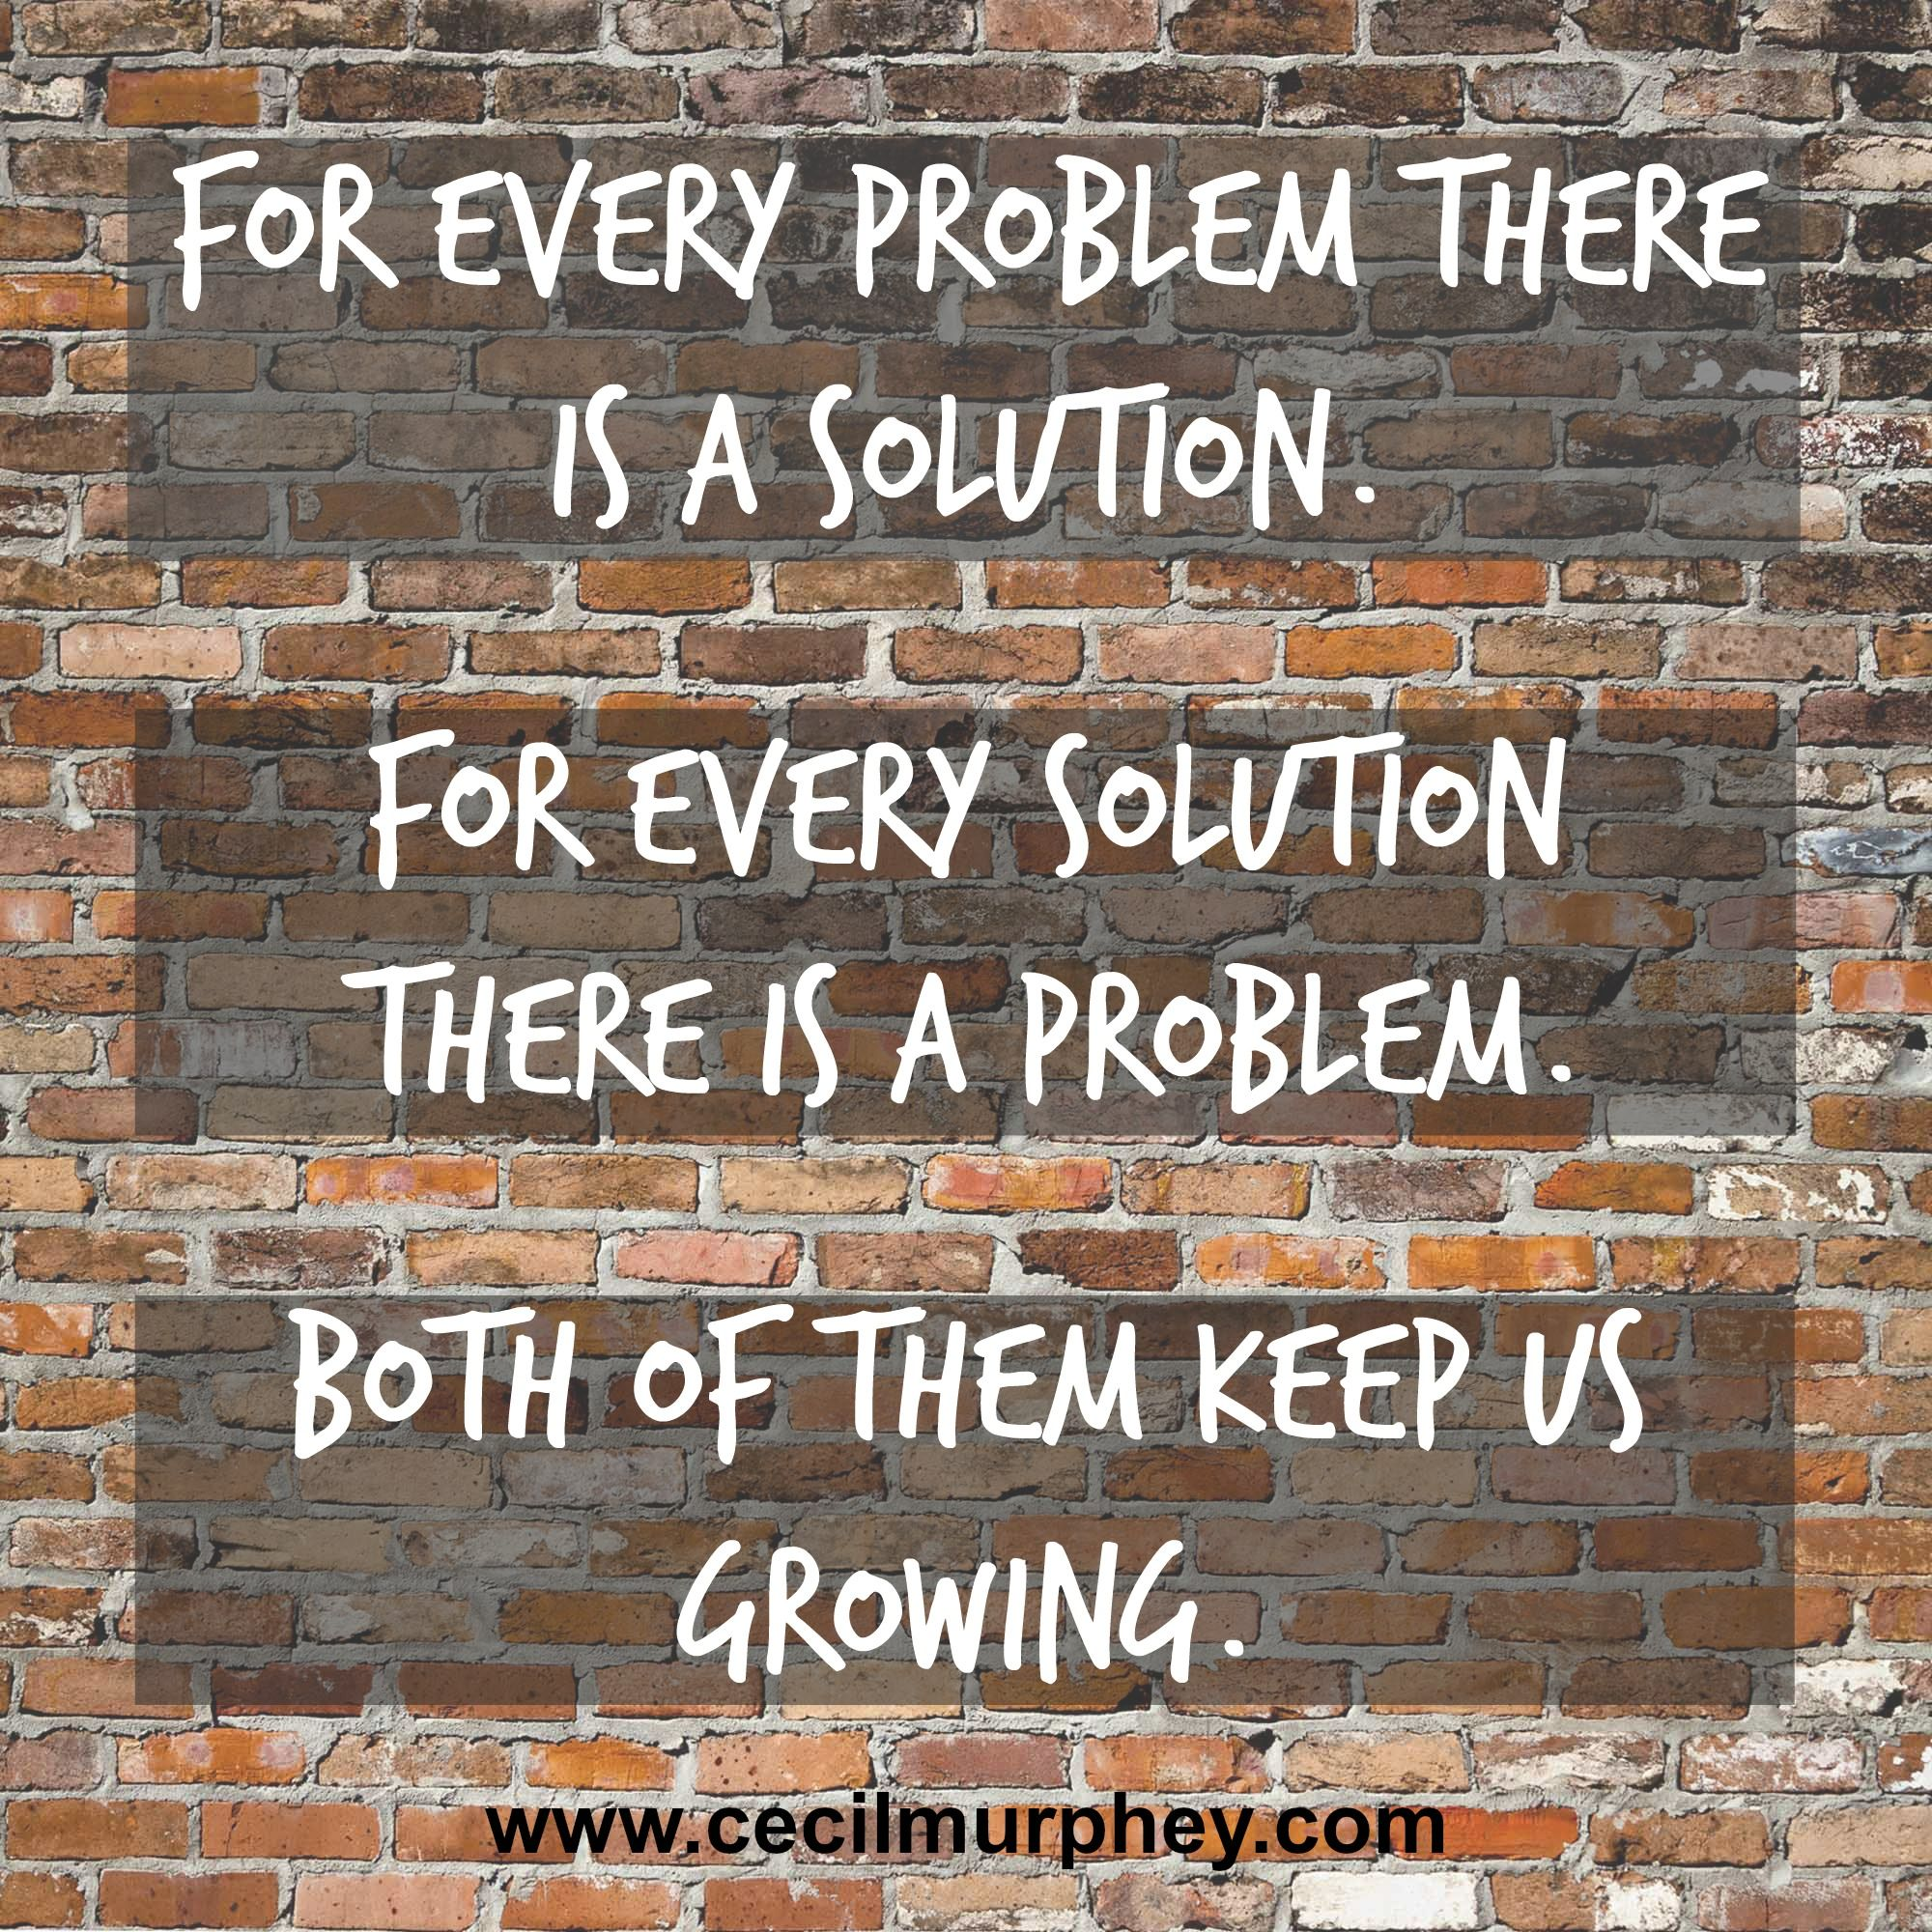 For Every Problem There Is A Solution For Every Solution There Is A Problem Both Of Them Keep Us Growing Simple Life Quotes True Interesting Facts Survivor